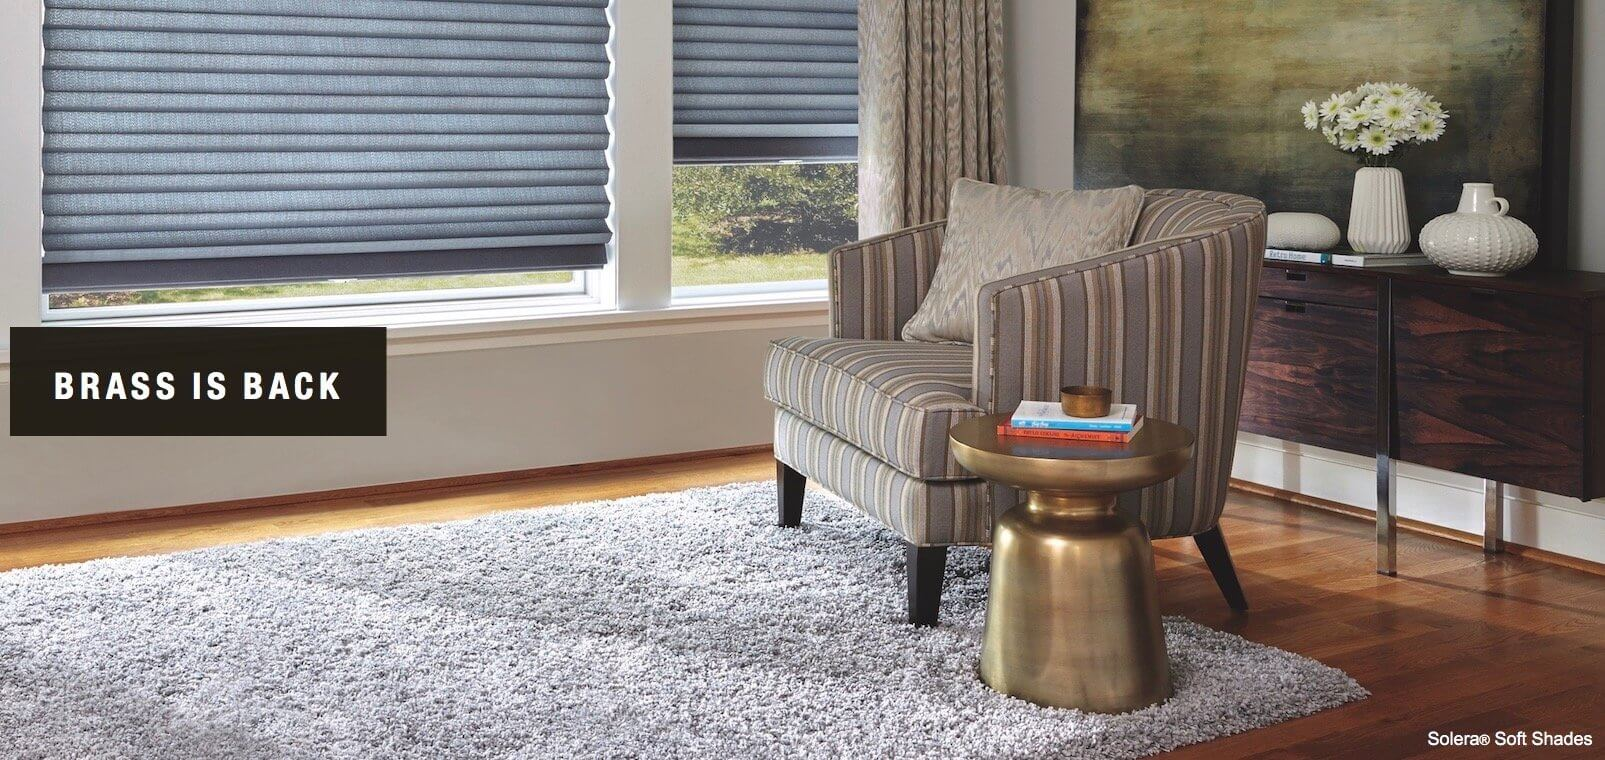 Brass is popular again as a home decorating choice.